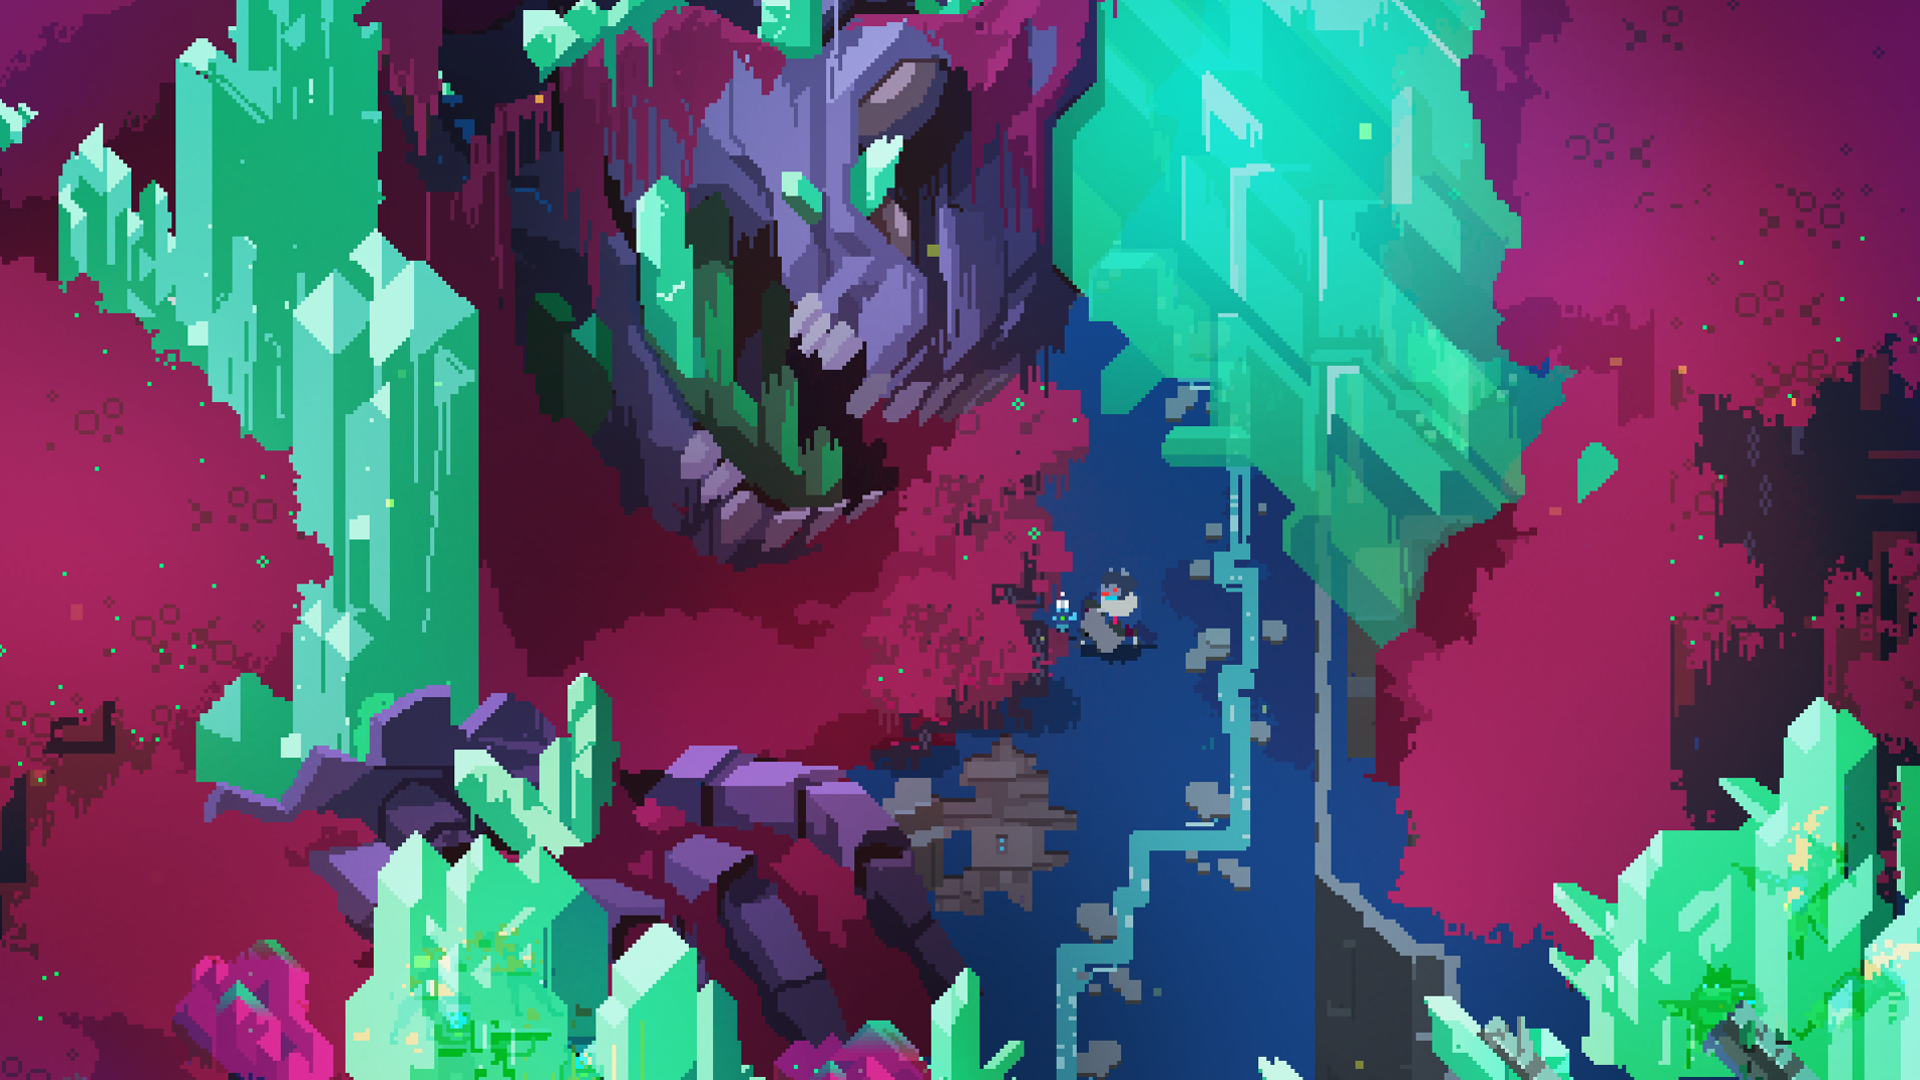 Hyper Light Drifter Game Wallpaper 61526 1920x1080px 1920x1080